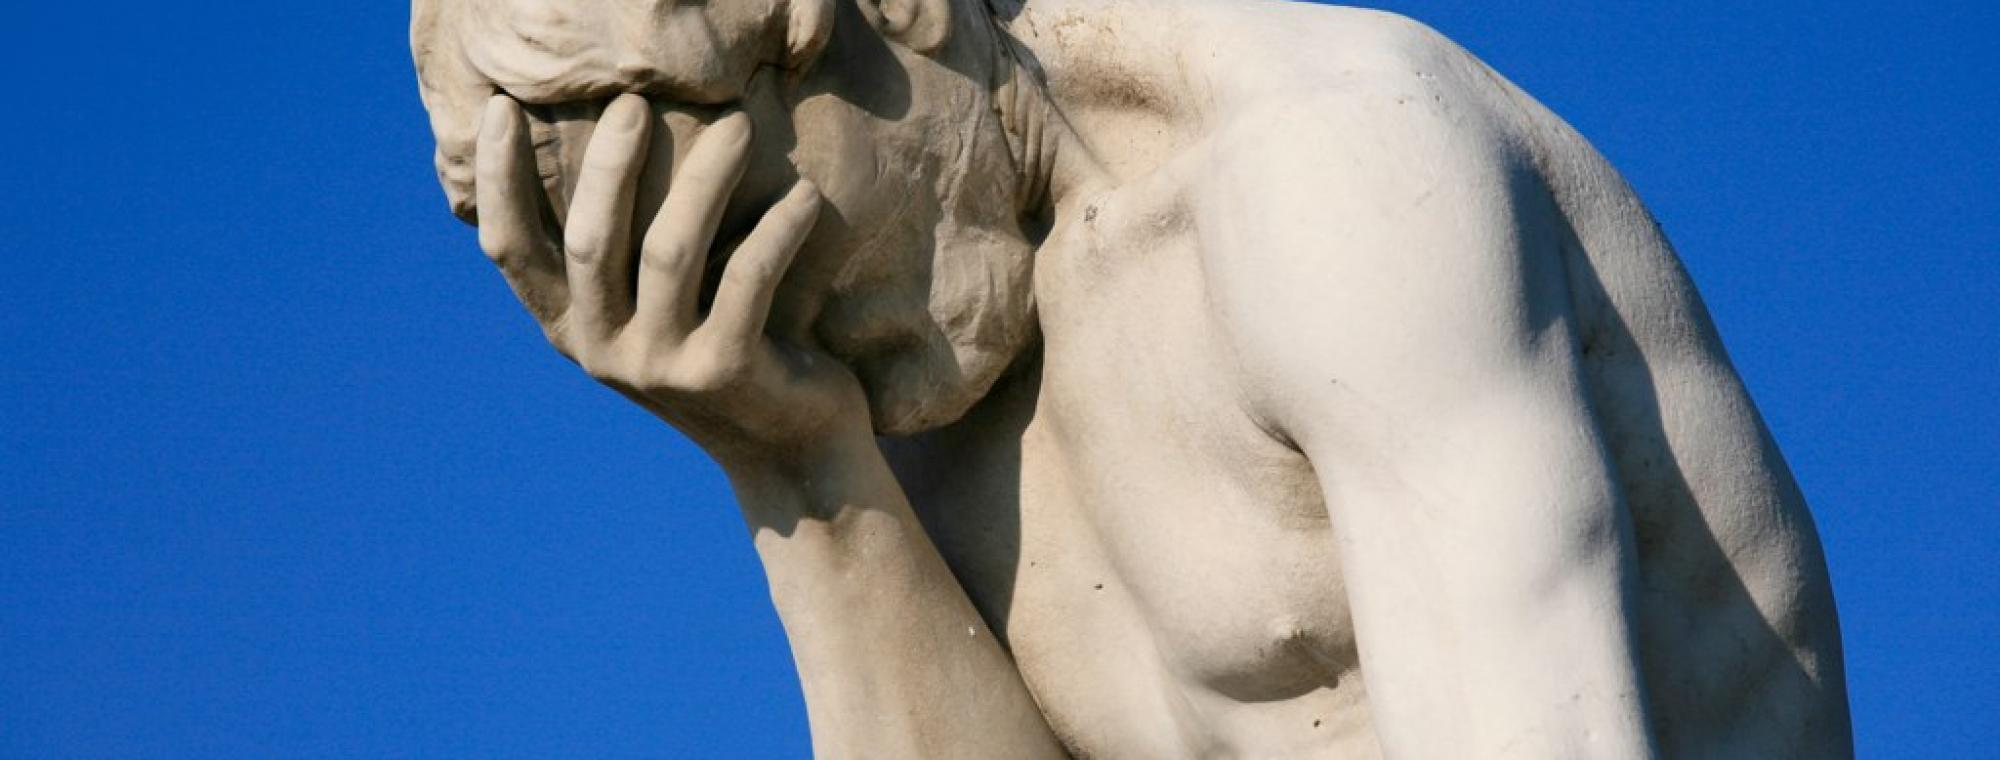 Paris Tuileries Garden Facepalm statue. This image was originally posted to Flickr by Alex E. Proimos